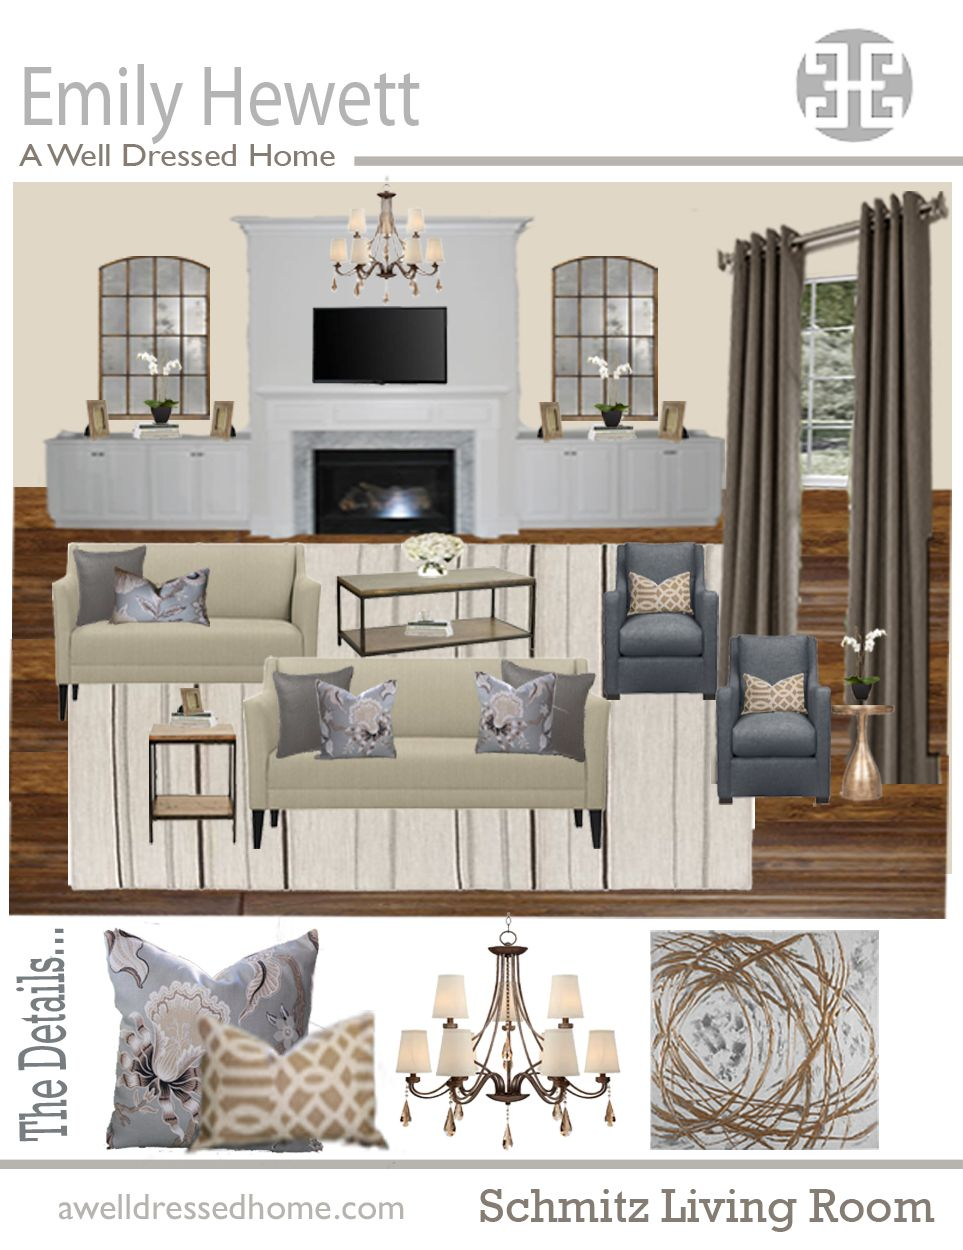 Design A Living Room Online For Free Prepossessing Schmitz Living Room Online Design Board  For The Home  Pinterest Design Ideas